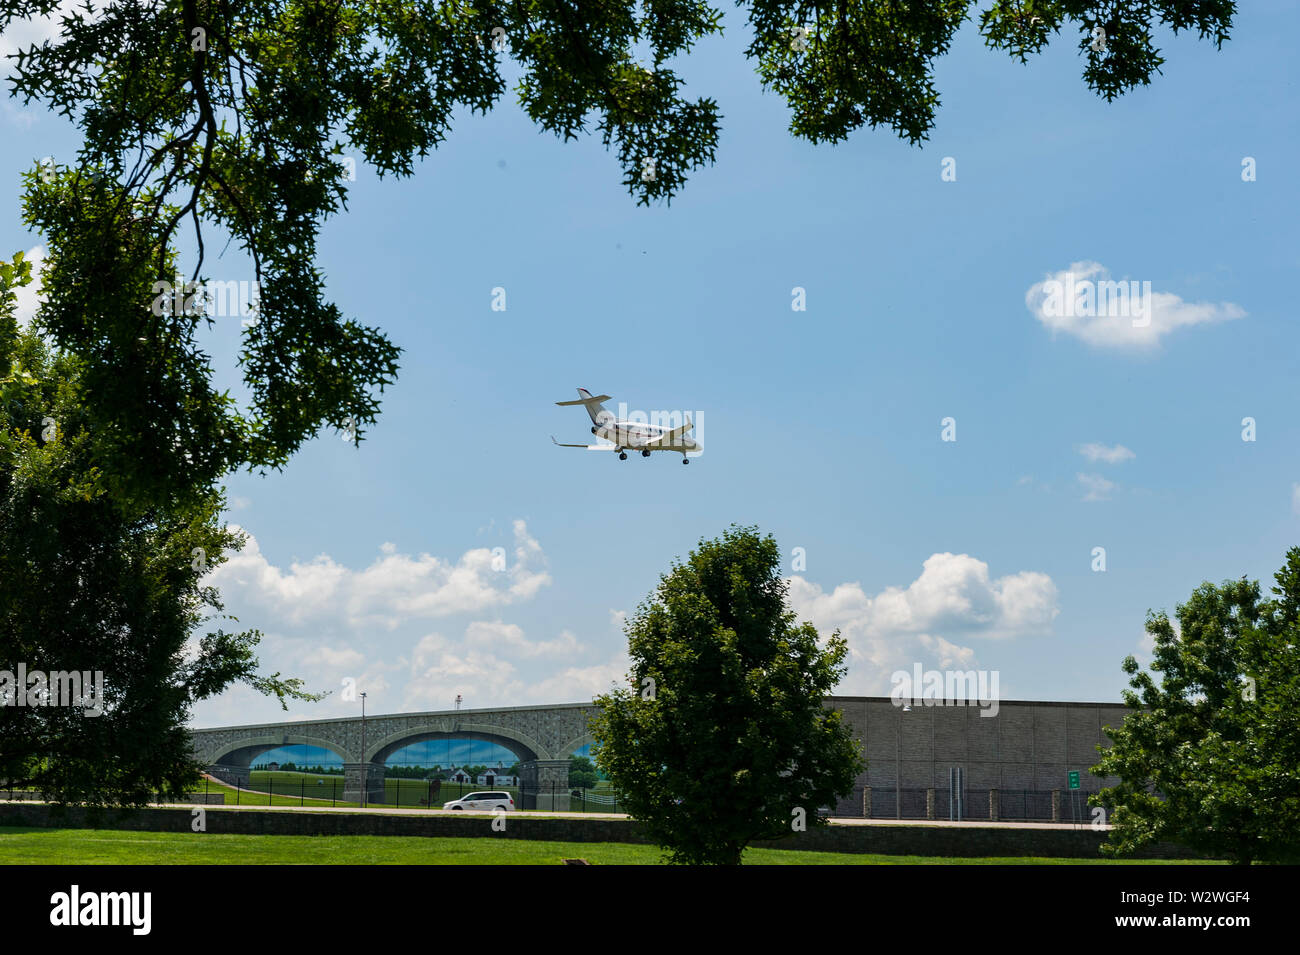 raytheon-hawker-landing-at-lexington-bluegrass-field-in-lexington-kentucky-W2WGF4.jpg